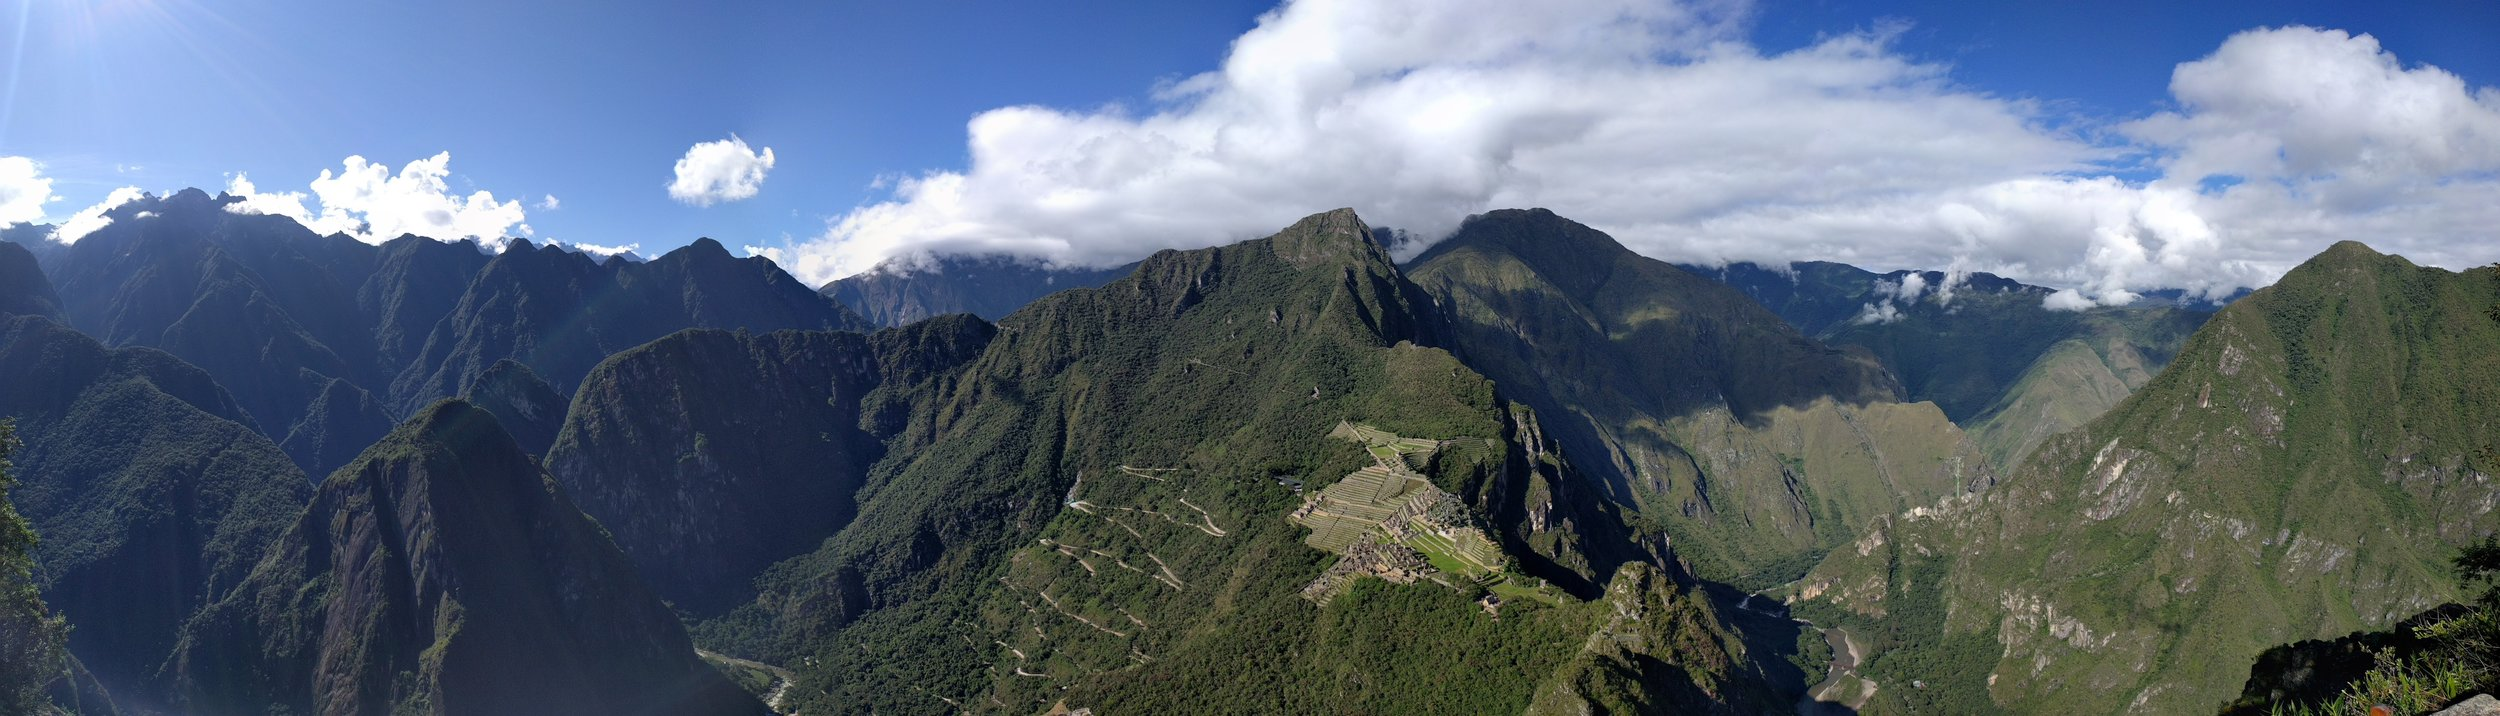 View from the top of Wayna Picchu